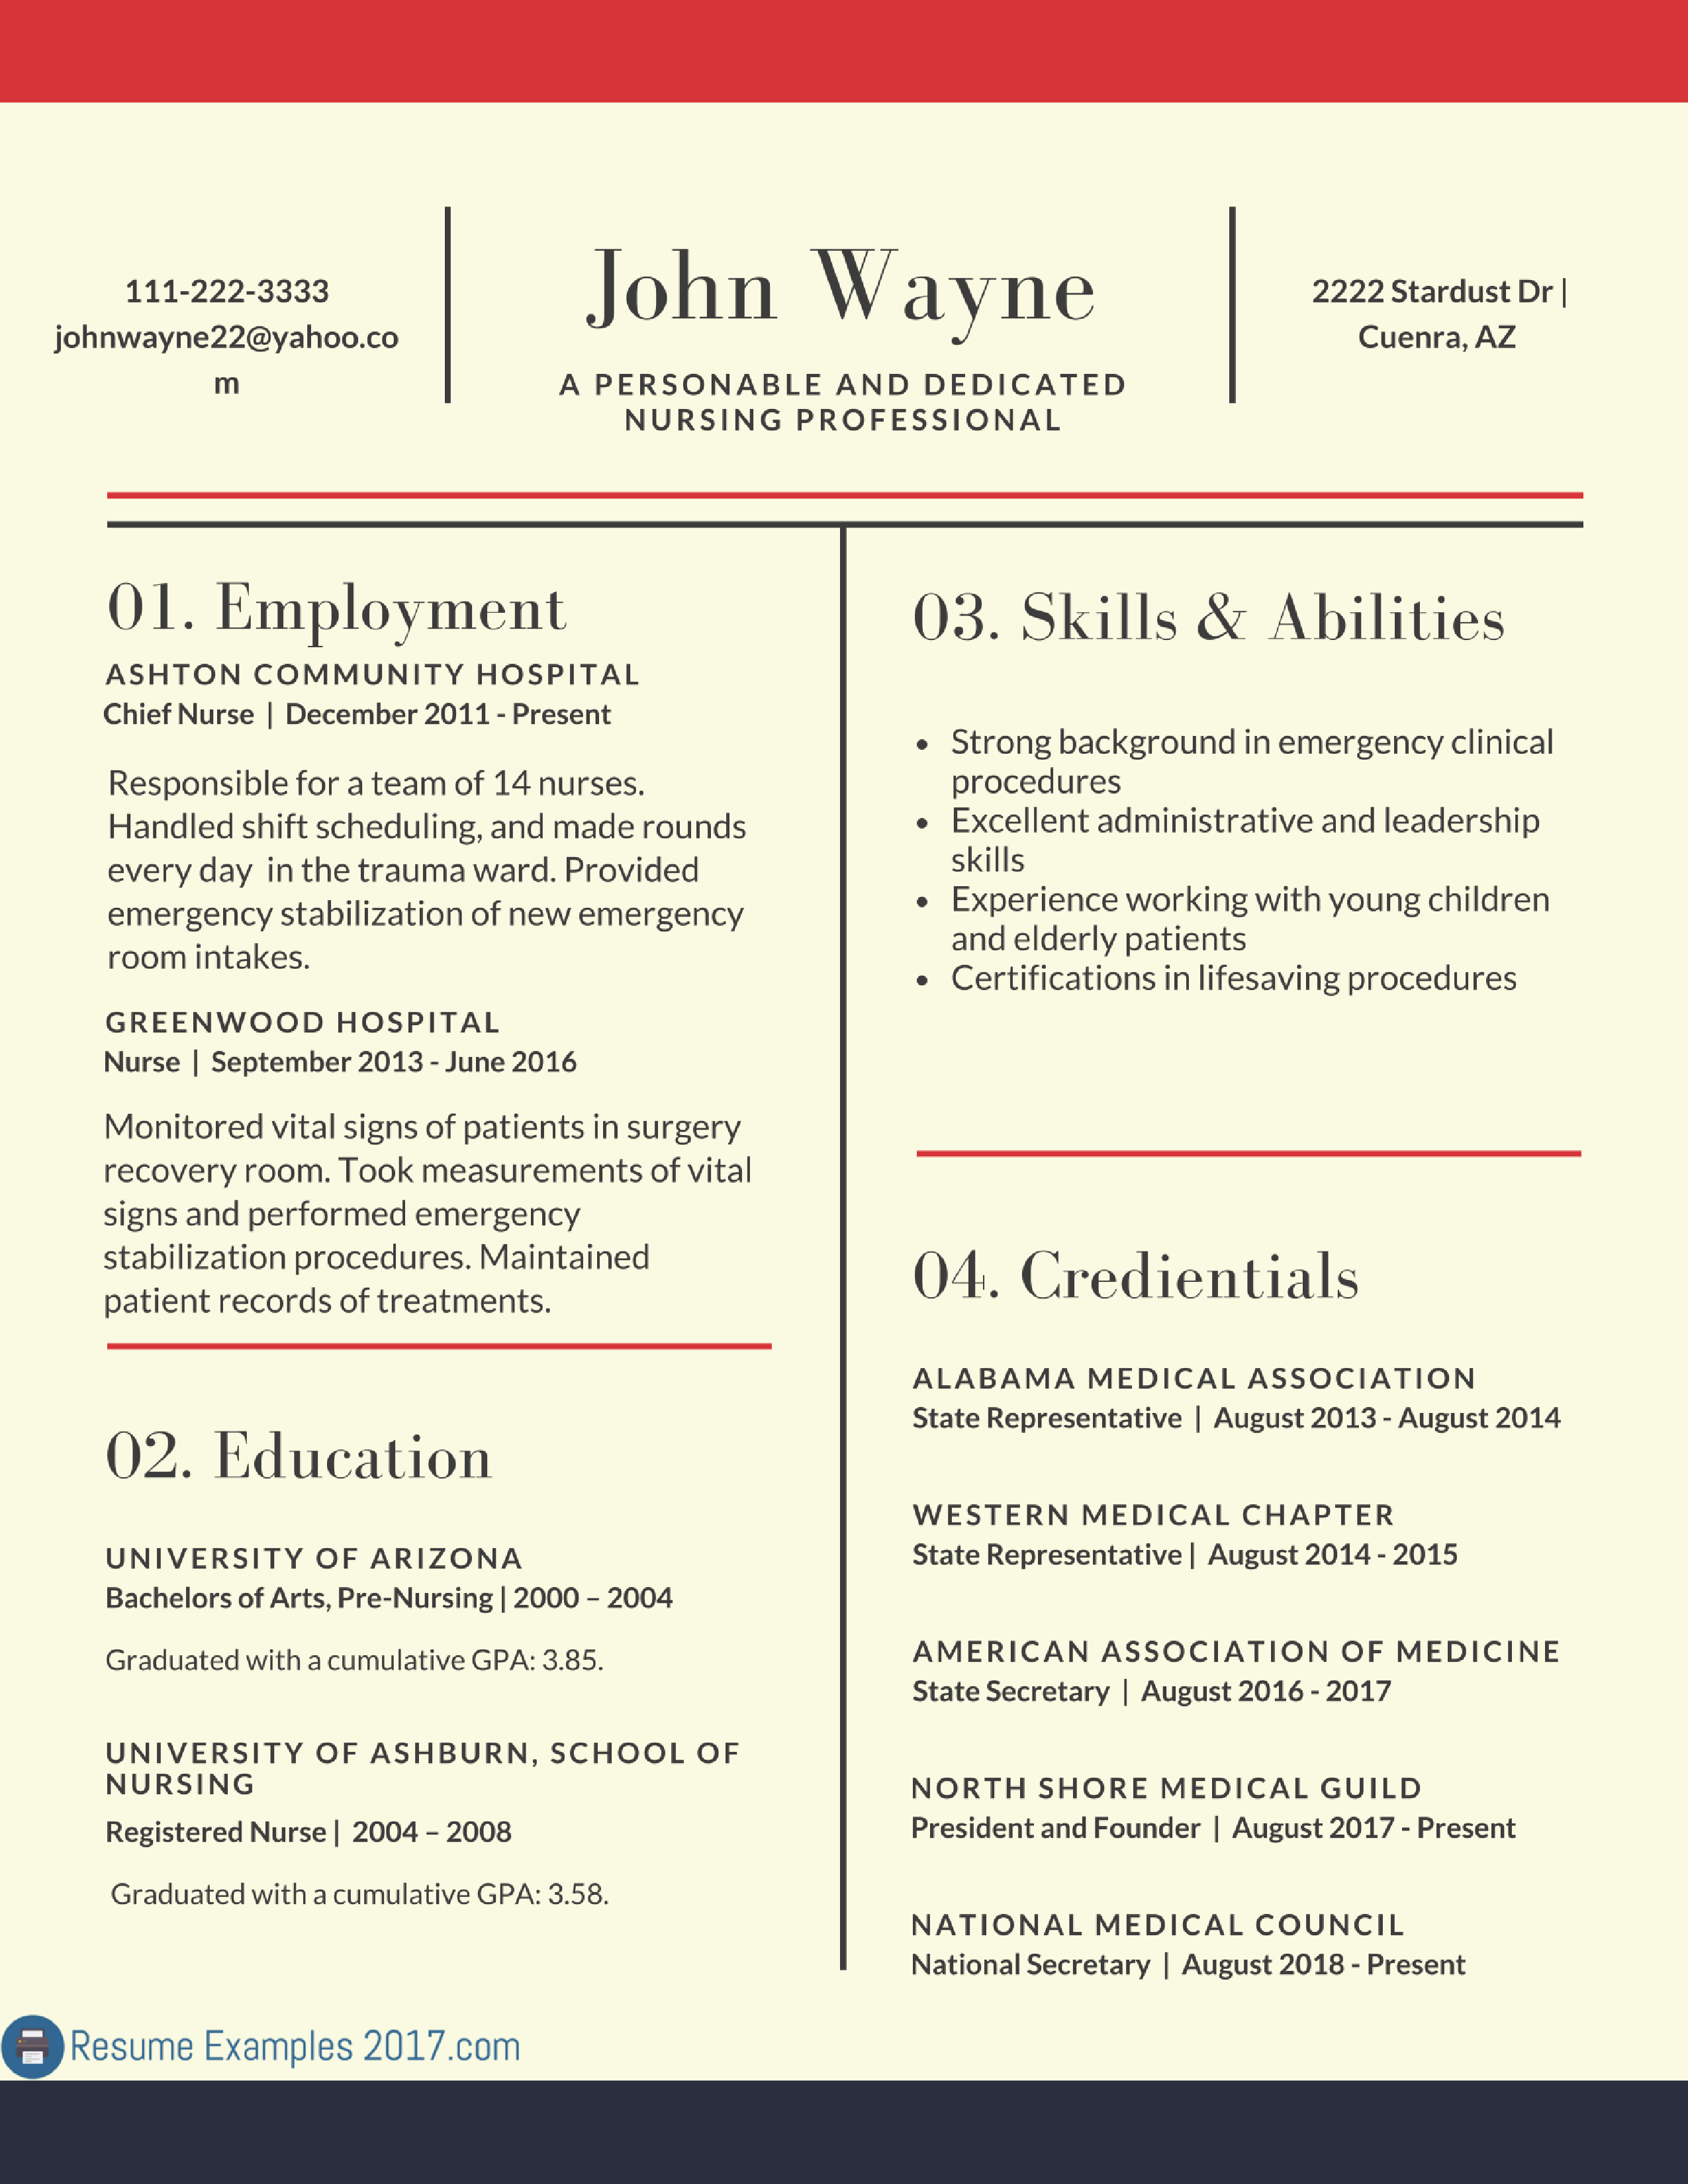 resume examples 2017 skills examples, simple career objective for manager primary care physician sample format template